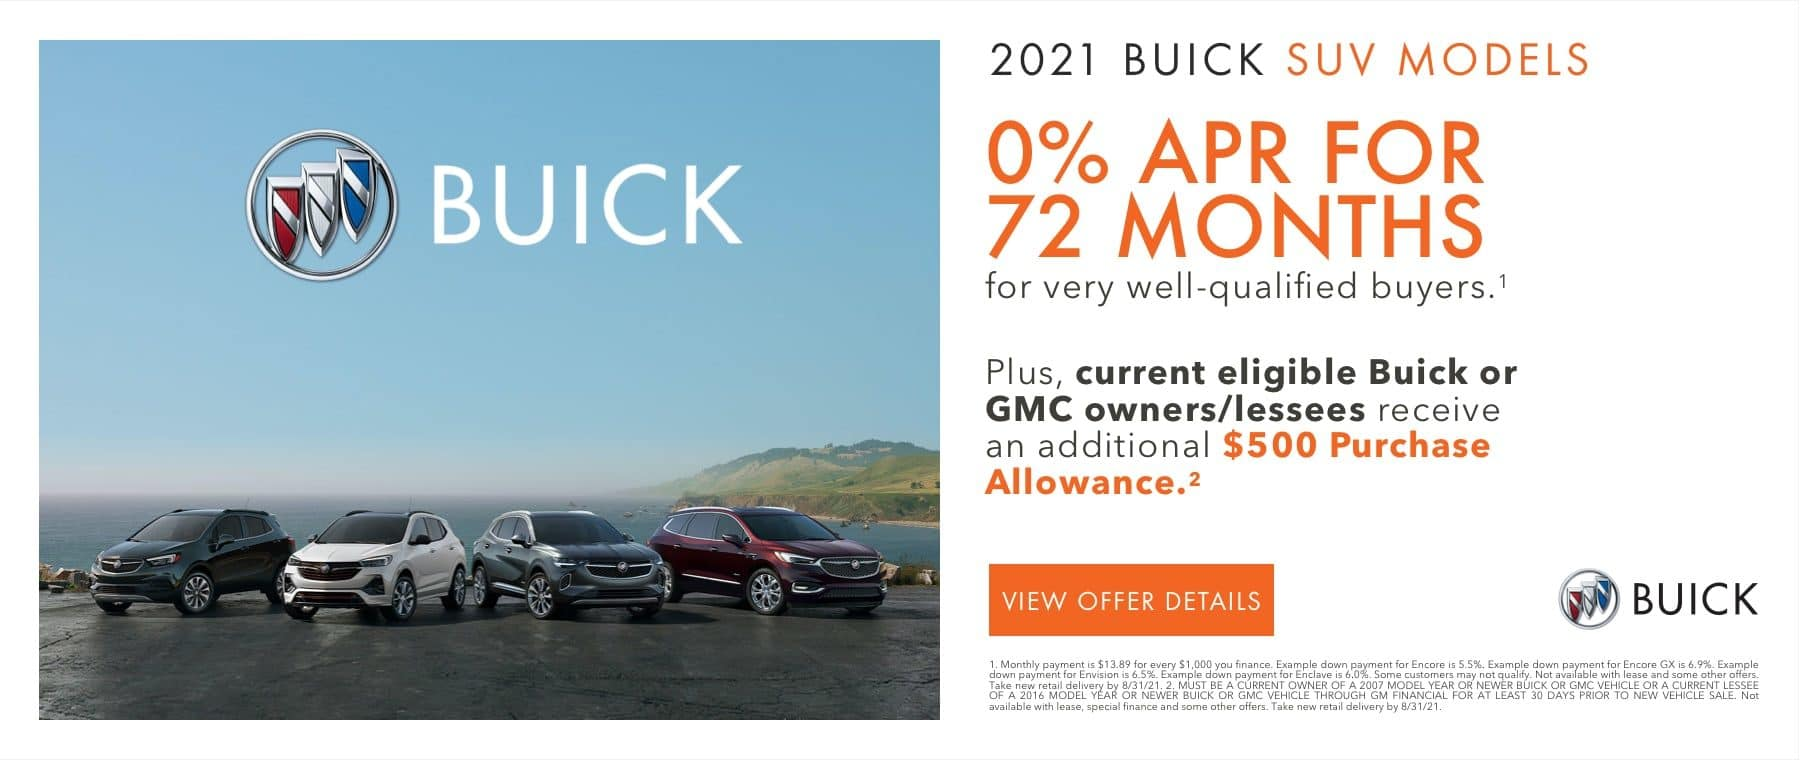 0% APR for 72 months for very well-qualified buyers on most models.1 Plus, current eligible Buick or GMC owners/lessees receive an additional $500 Purchase Allowance on most models.2